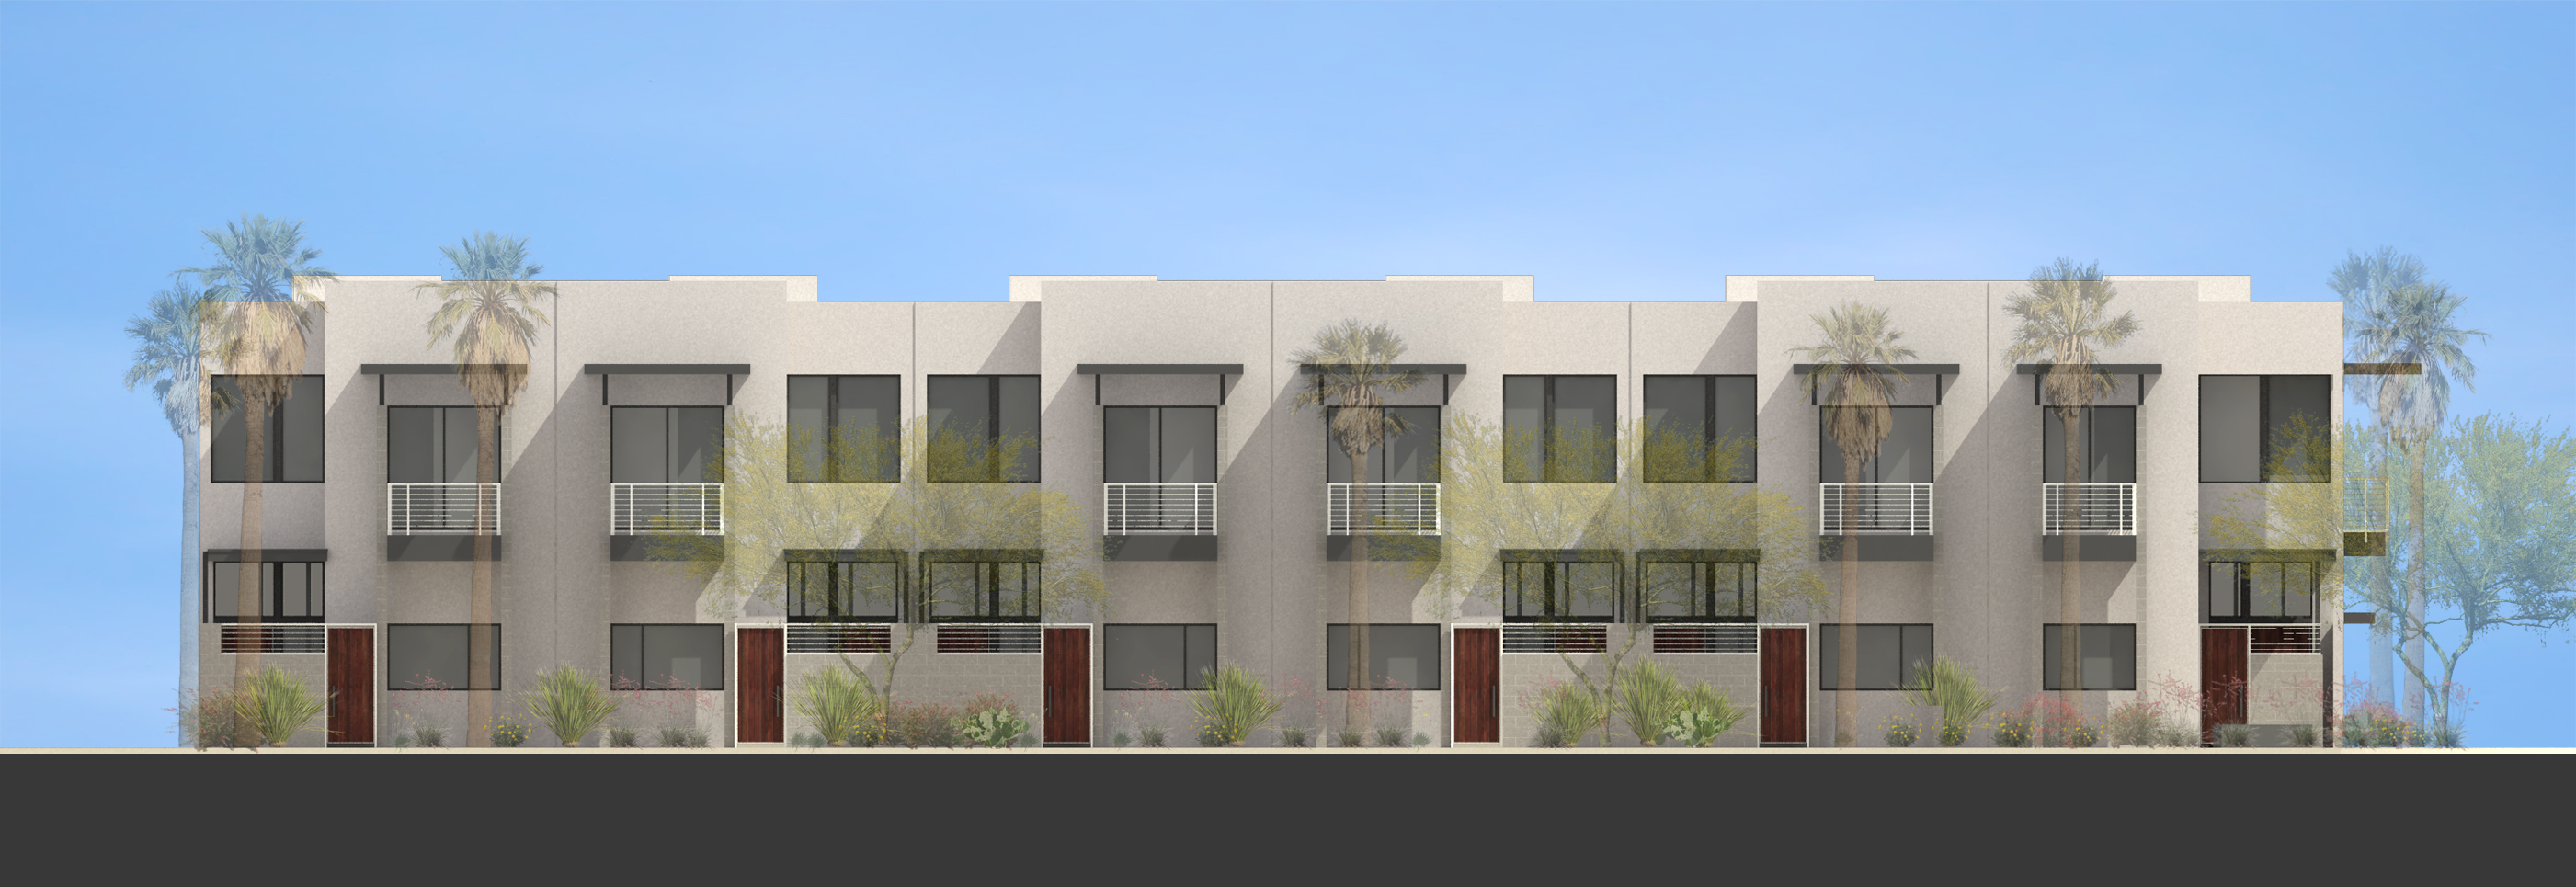 The douglas scottsdale north rendering